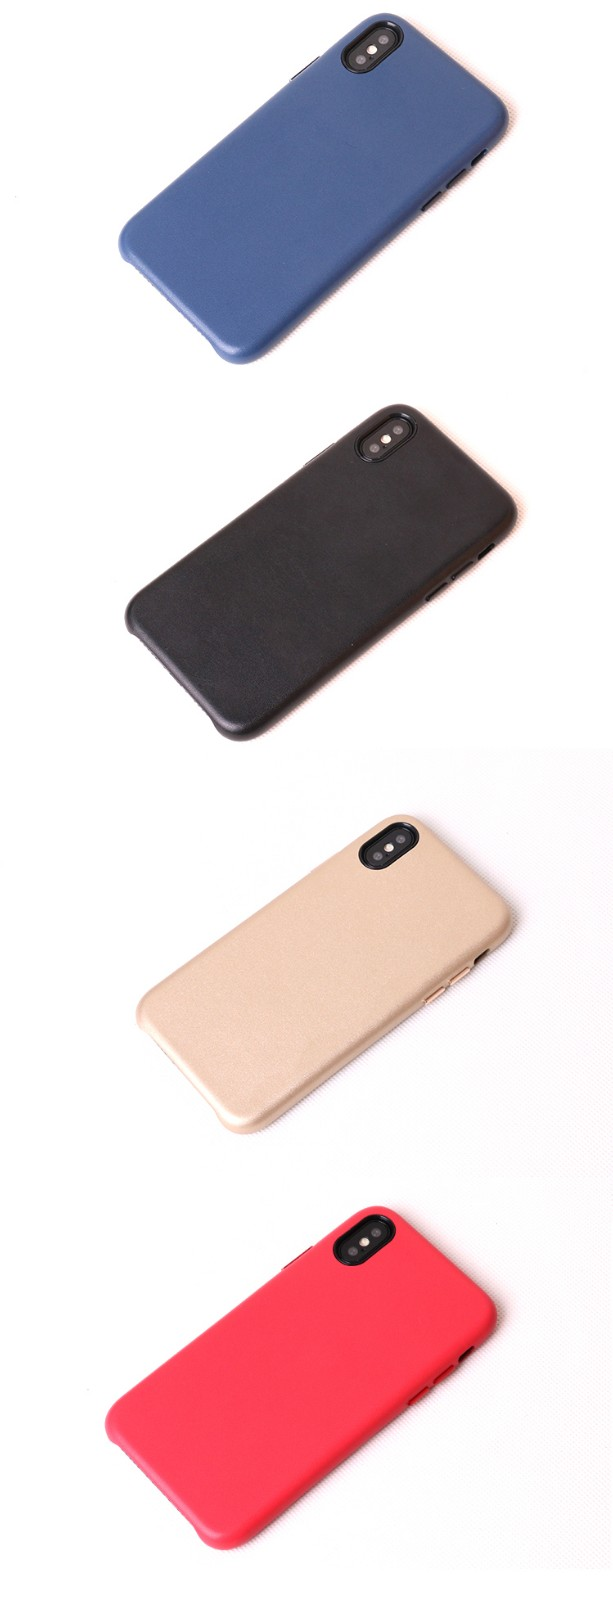 Vserstore 7plus iphone plus case wholesale for Samsung-8